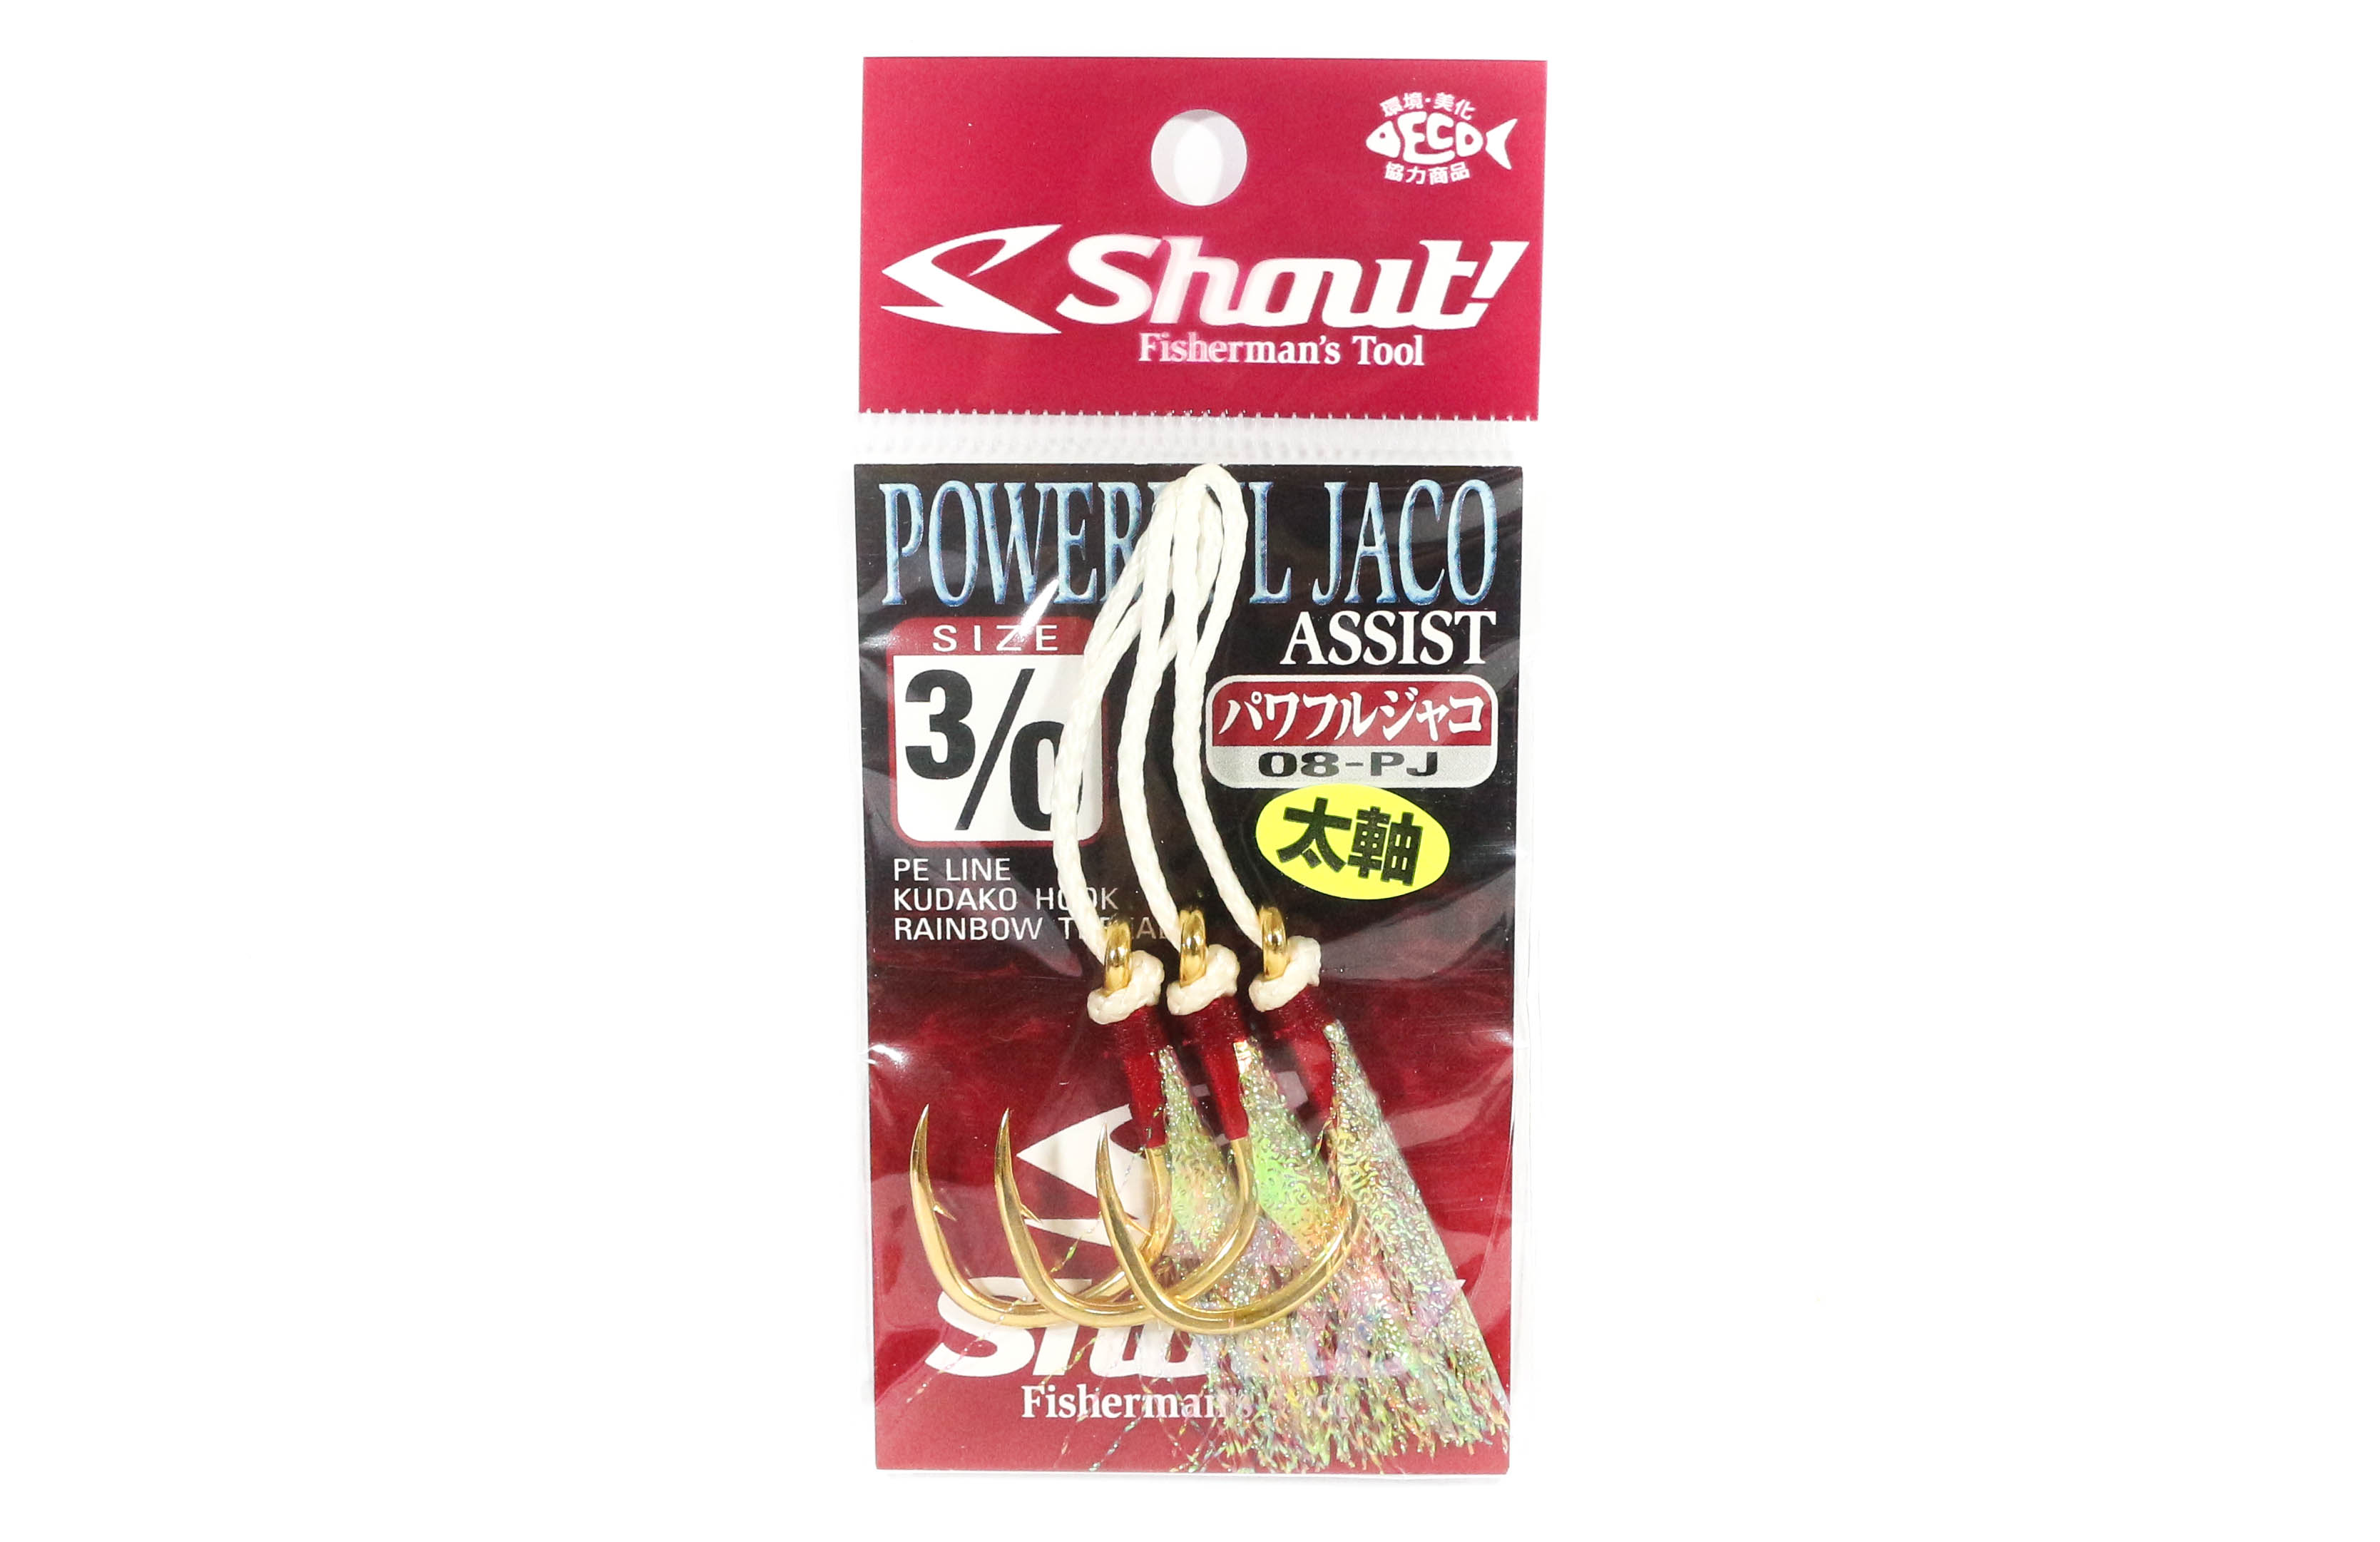 Shout 08-PJ Powerful Jaco Hook Rigged Assist Rainbow Thread Size 3/0 (6300)